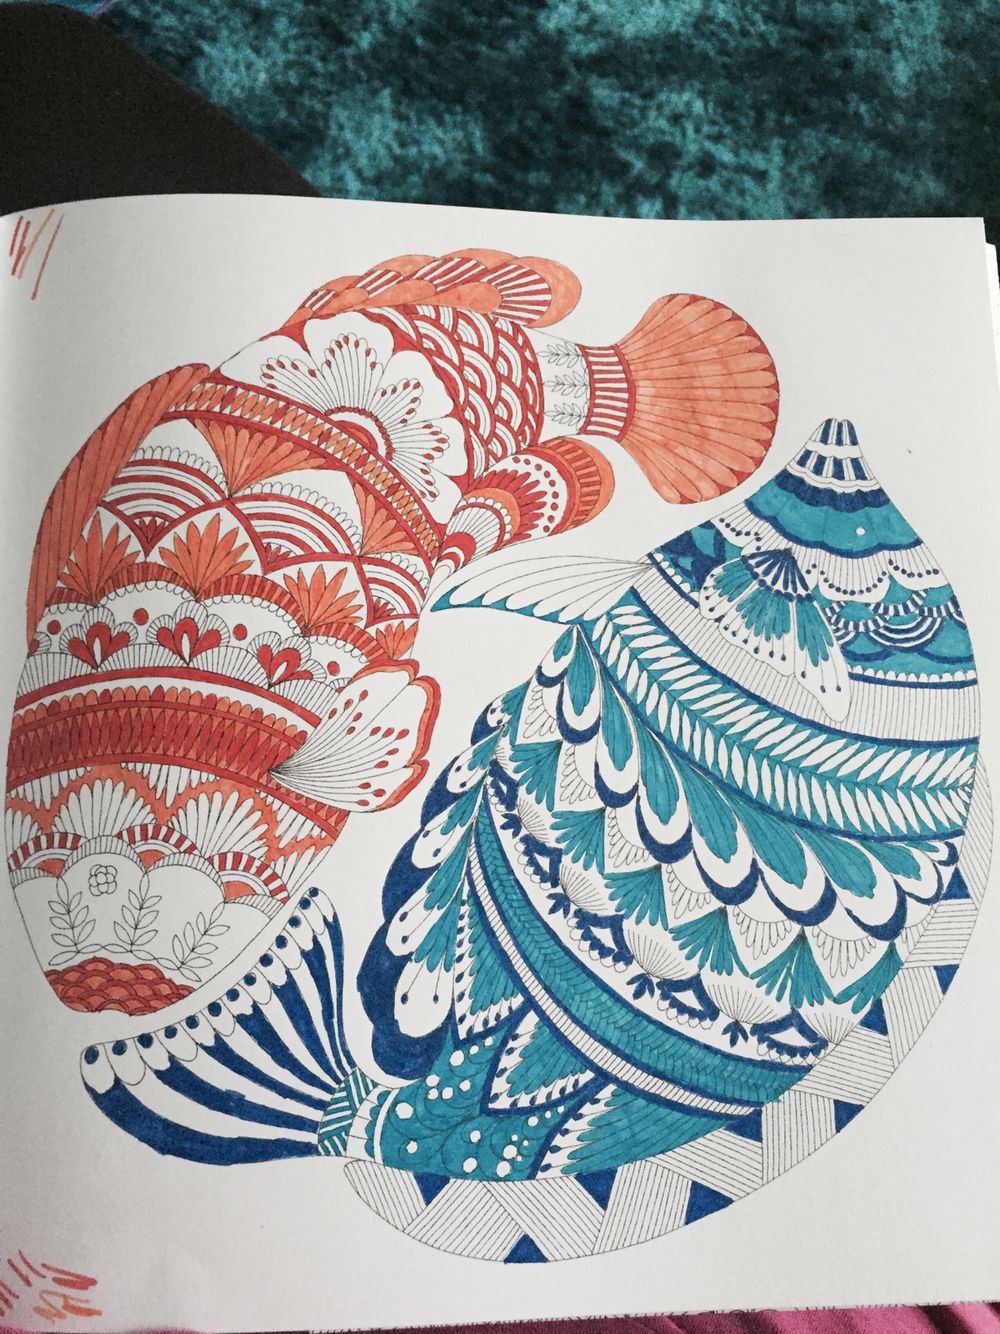 Fish From Millie Marotta S Animal Kingdom Colouring Book Animal Kingdom Colouring Book Millie Marotta Animal Kingdom Millie Marotta Coloring Book